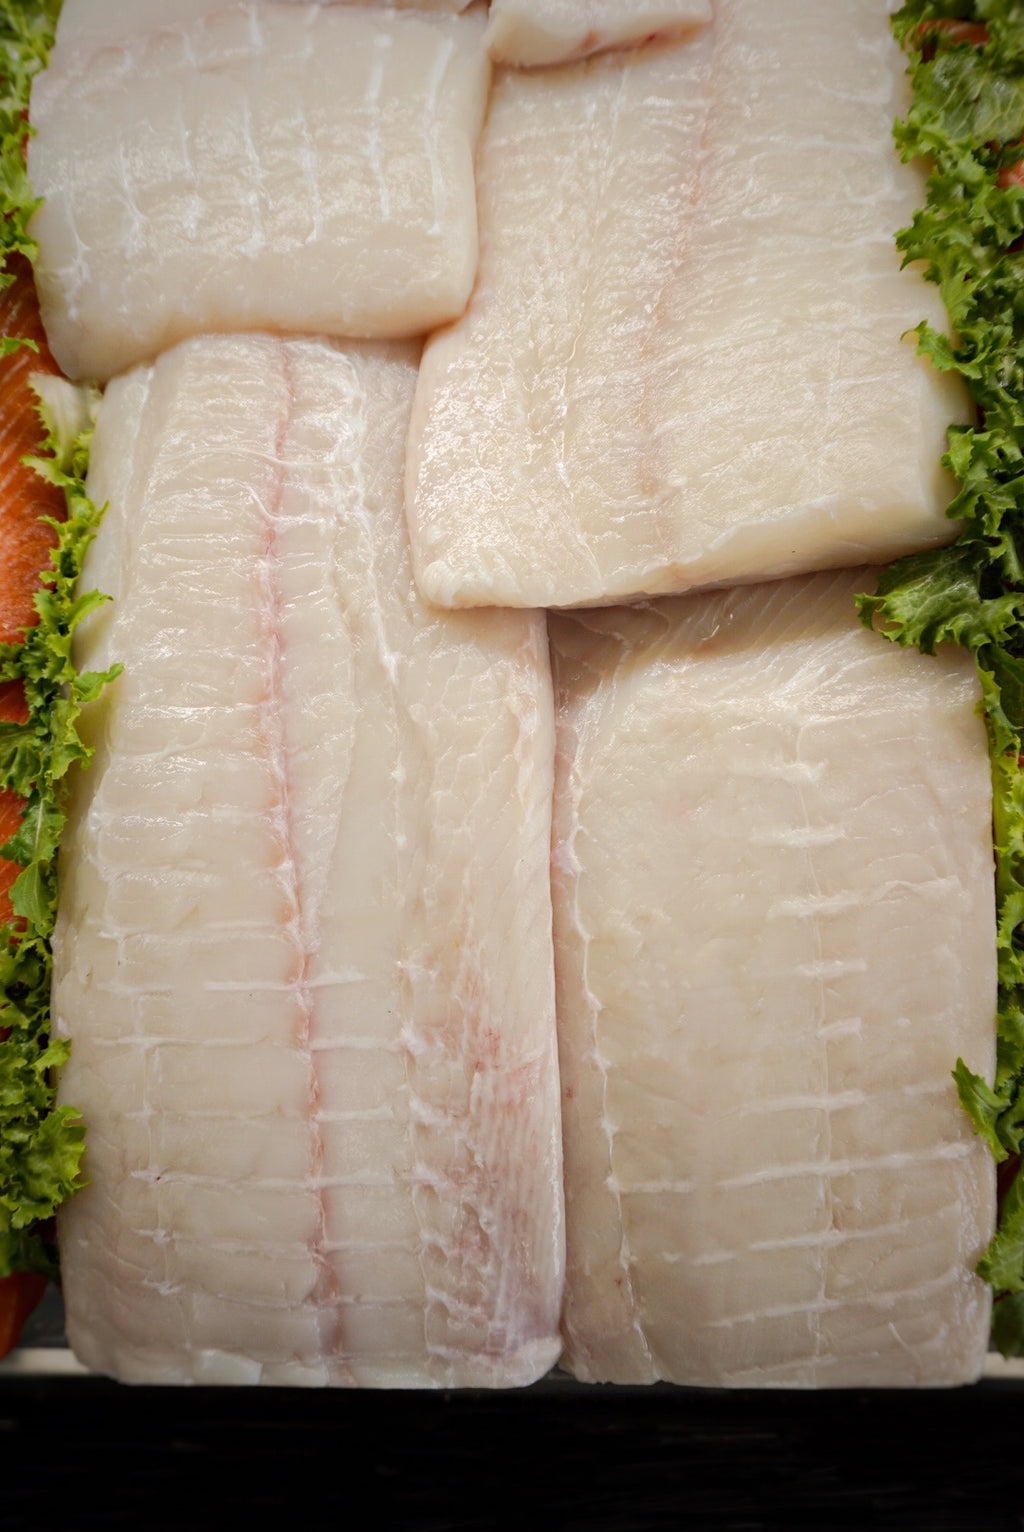 Halibut Fillet - Westport